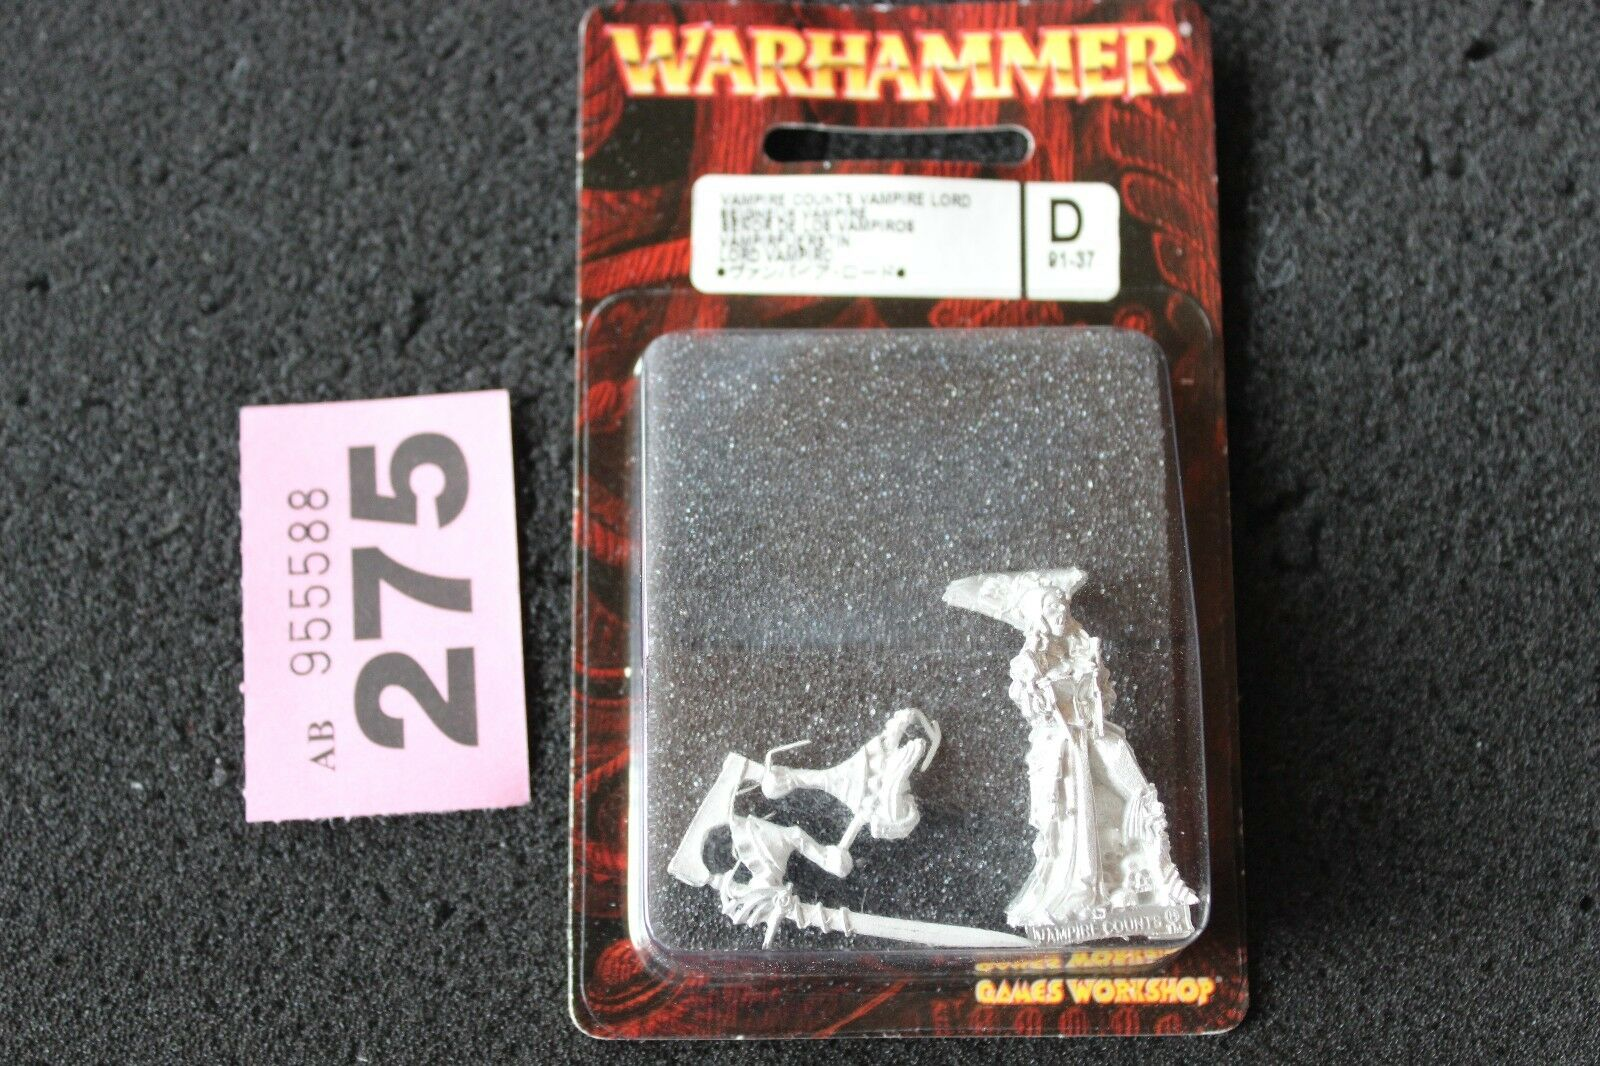 GAMES Workshop Warhammer Vampire Counts ISABELLA von Carsten metallo morti Nuovo GW